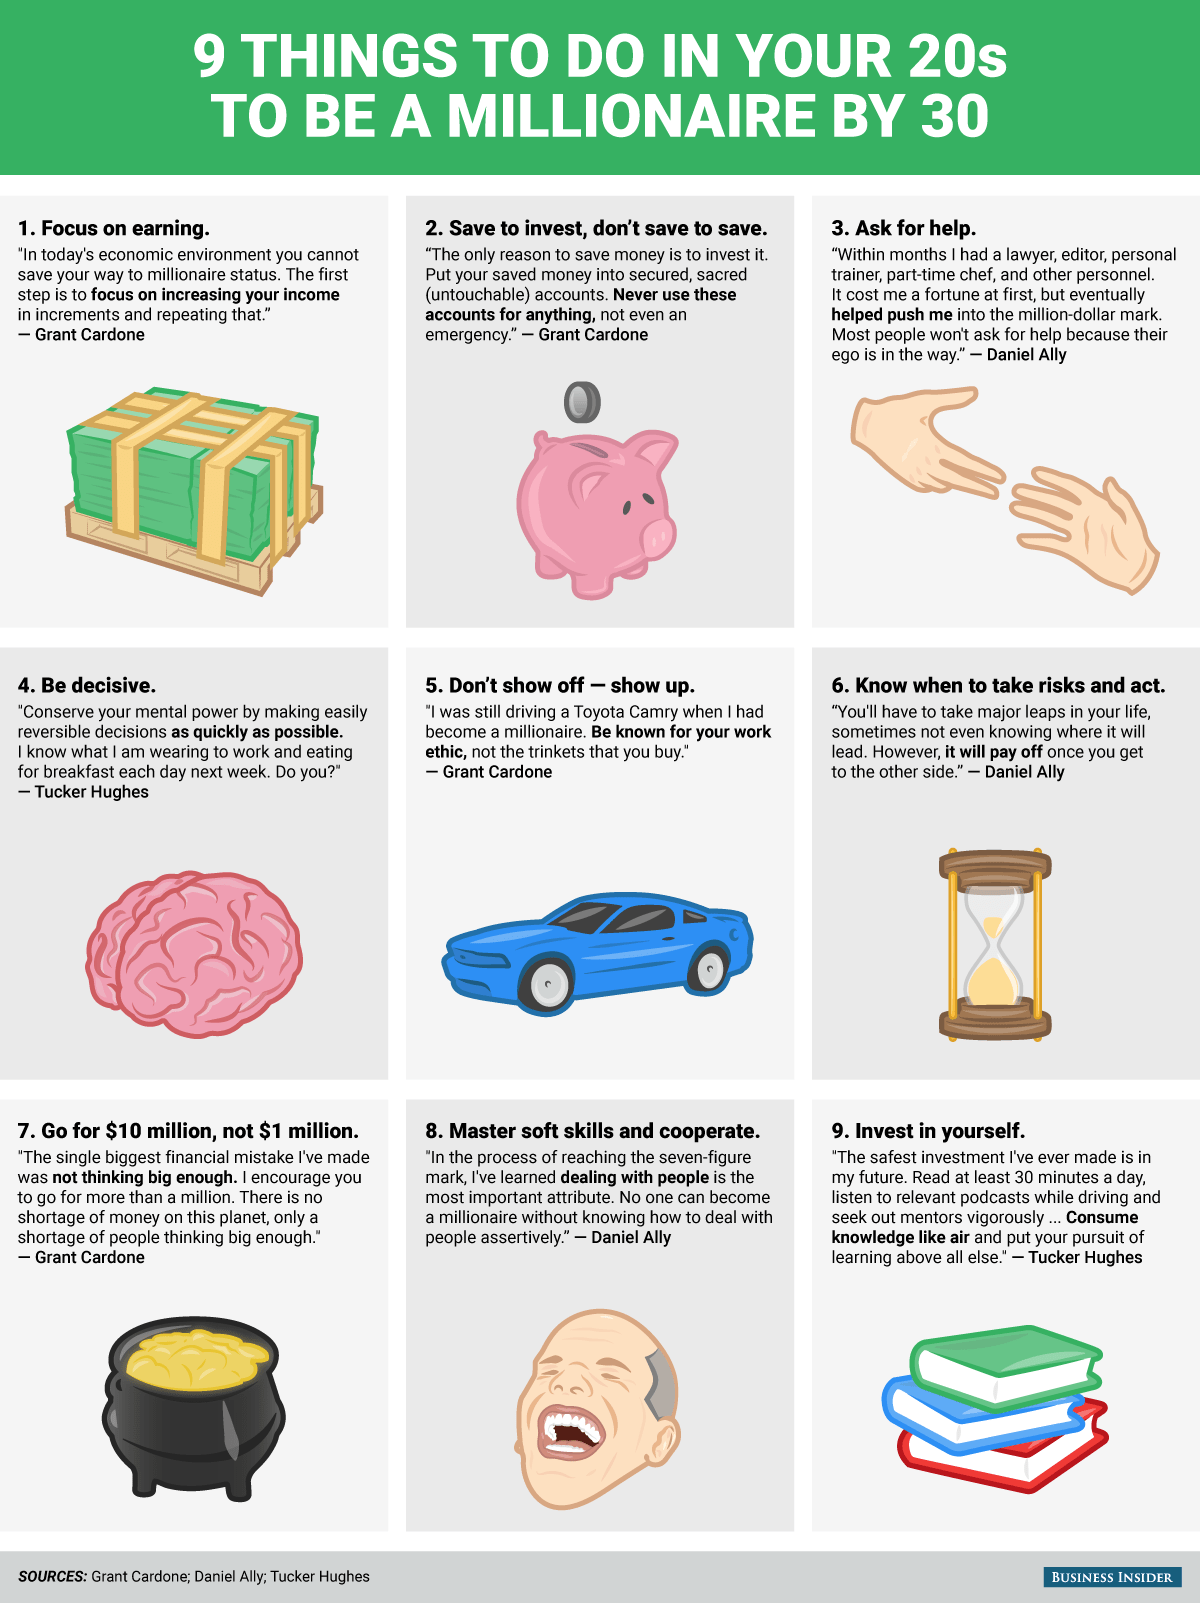 9 Things You Can Do In Your 20s To Be A Millionaire By 30